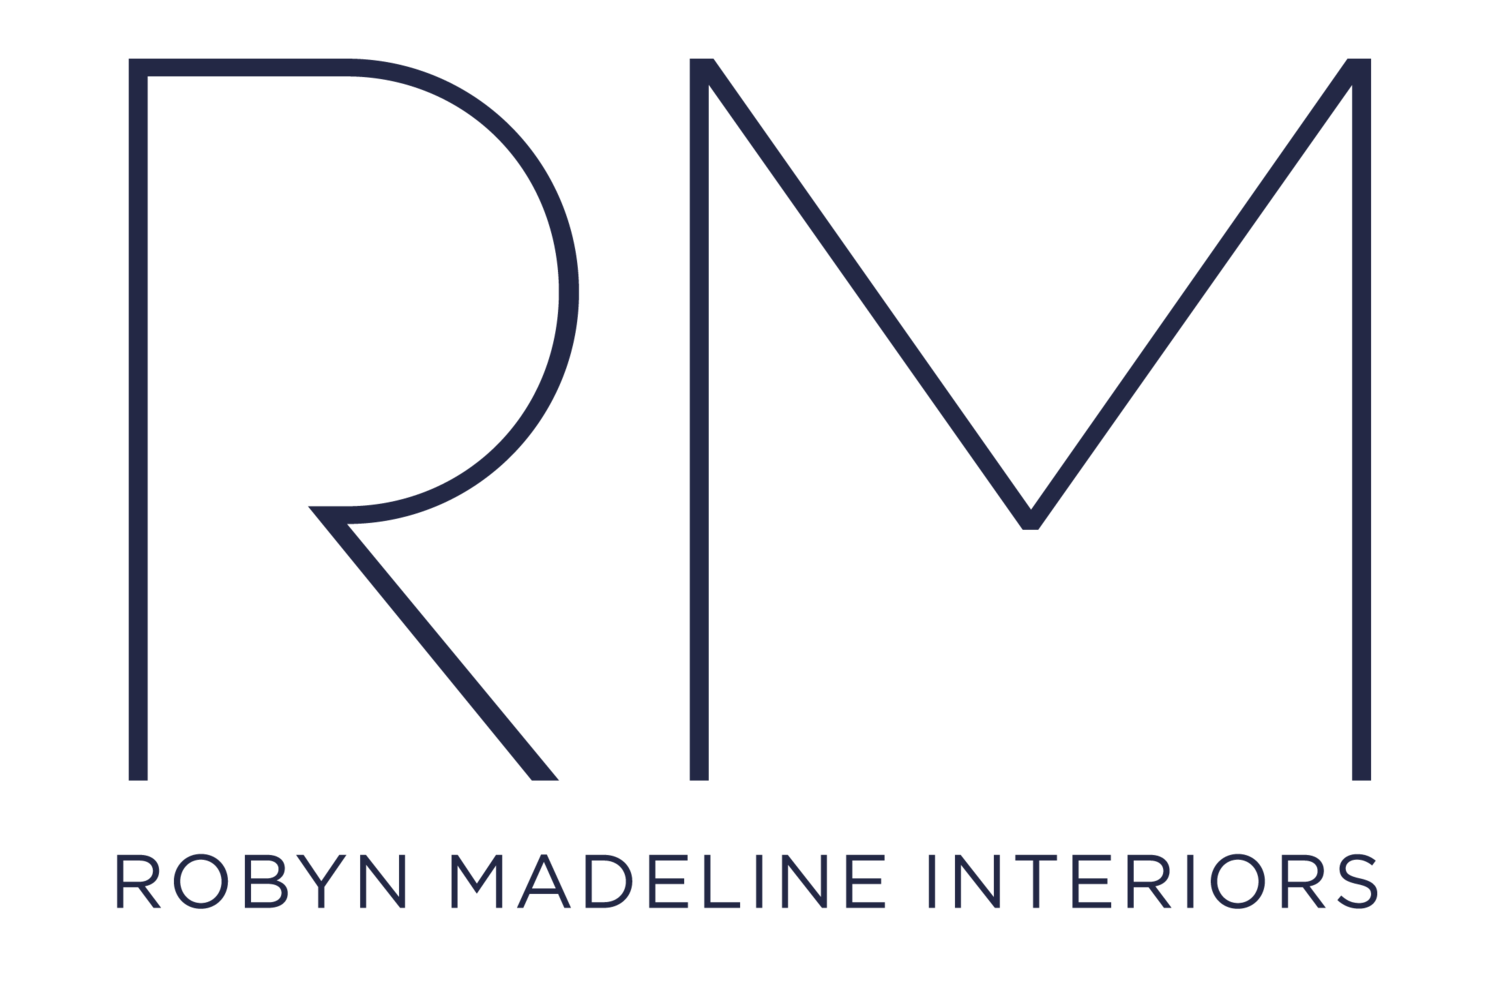 ROBYN MADELINE INTERIORS